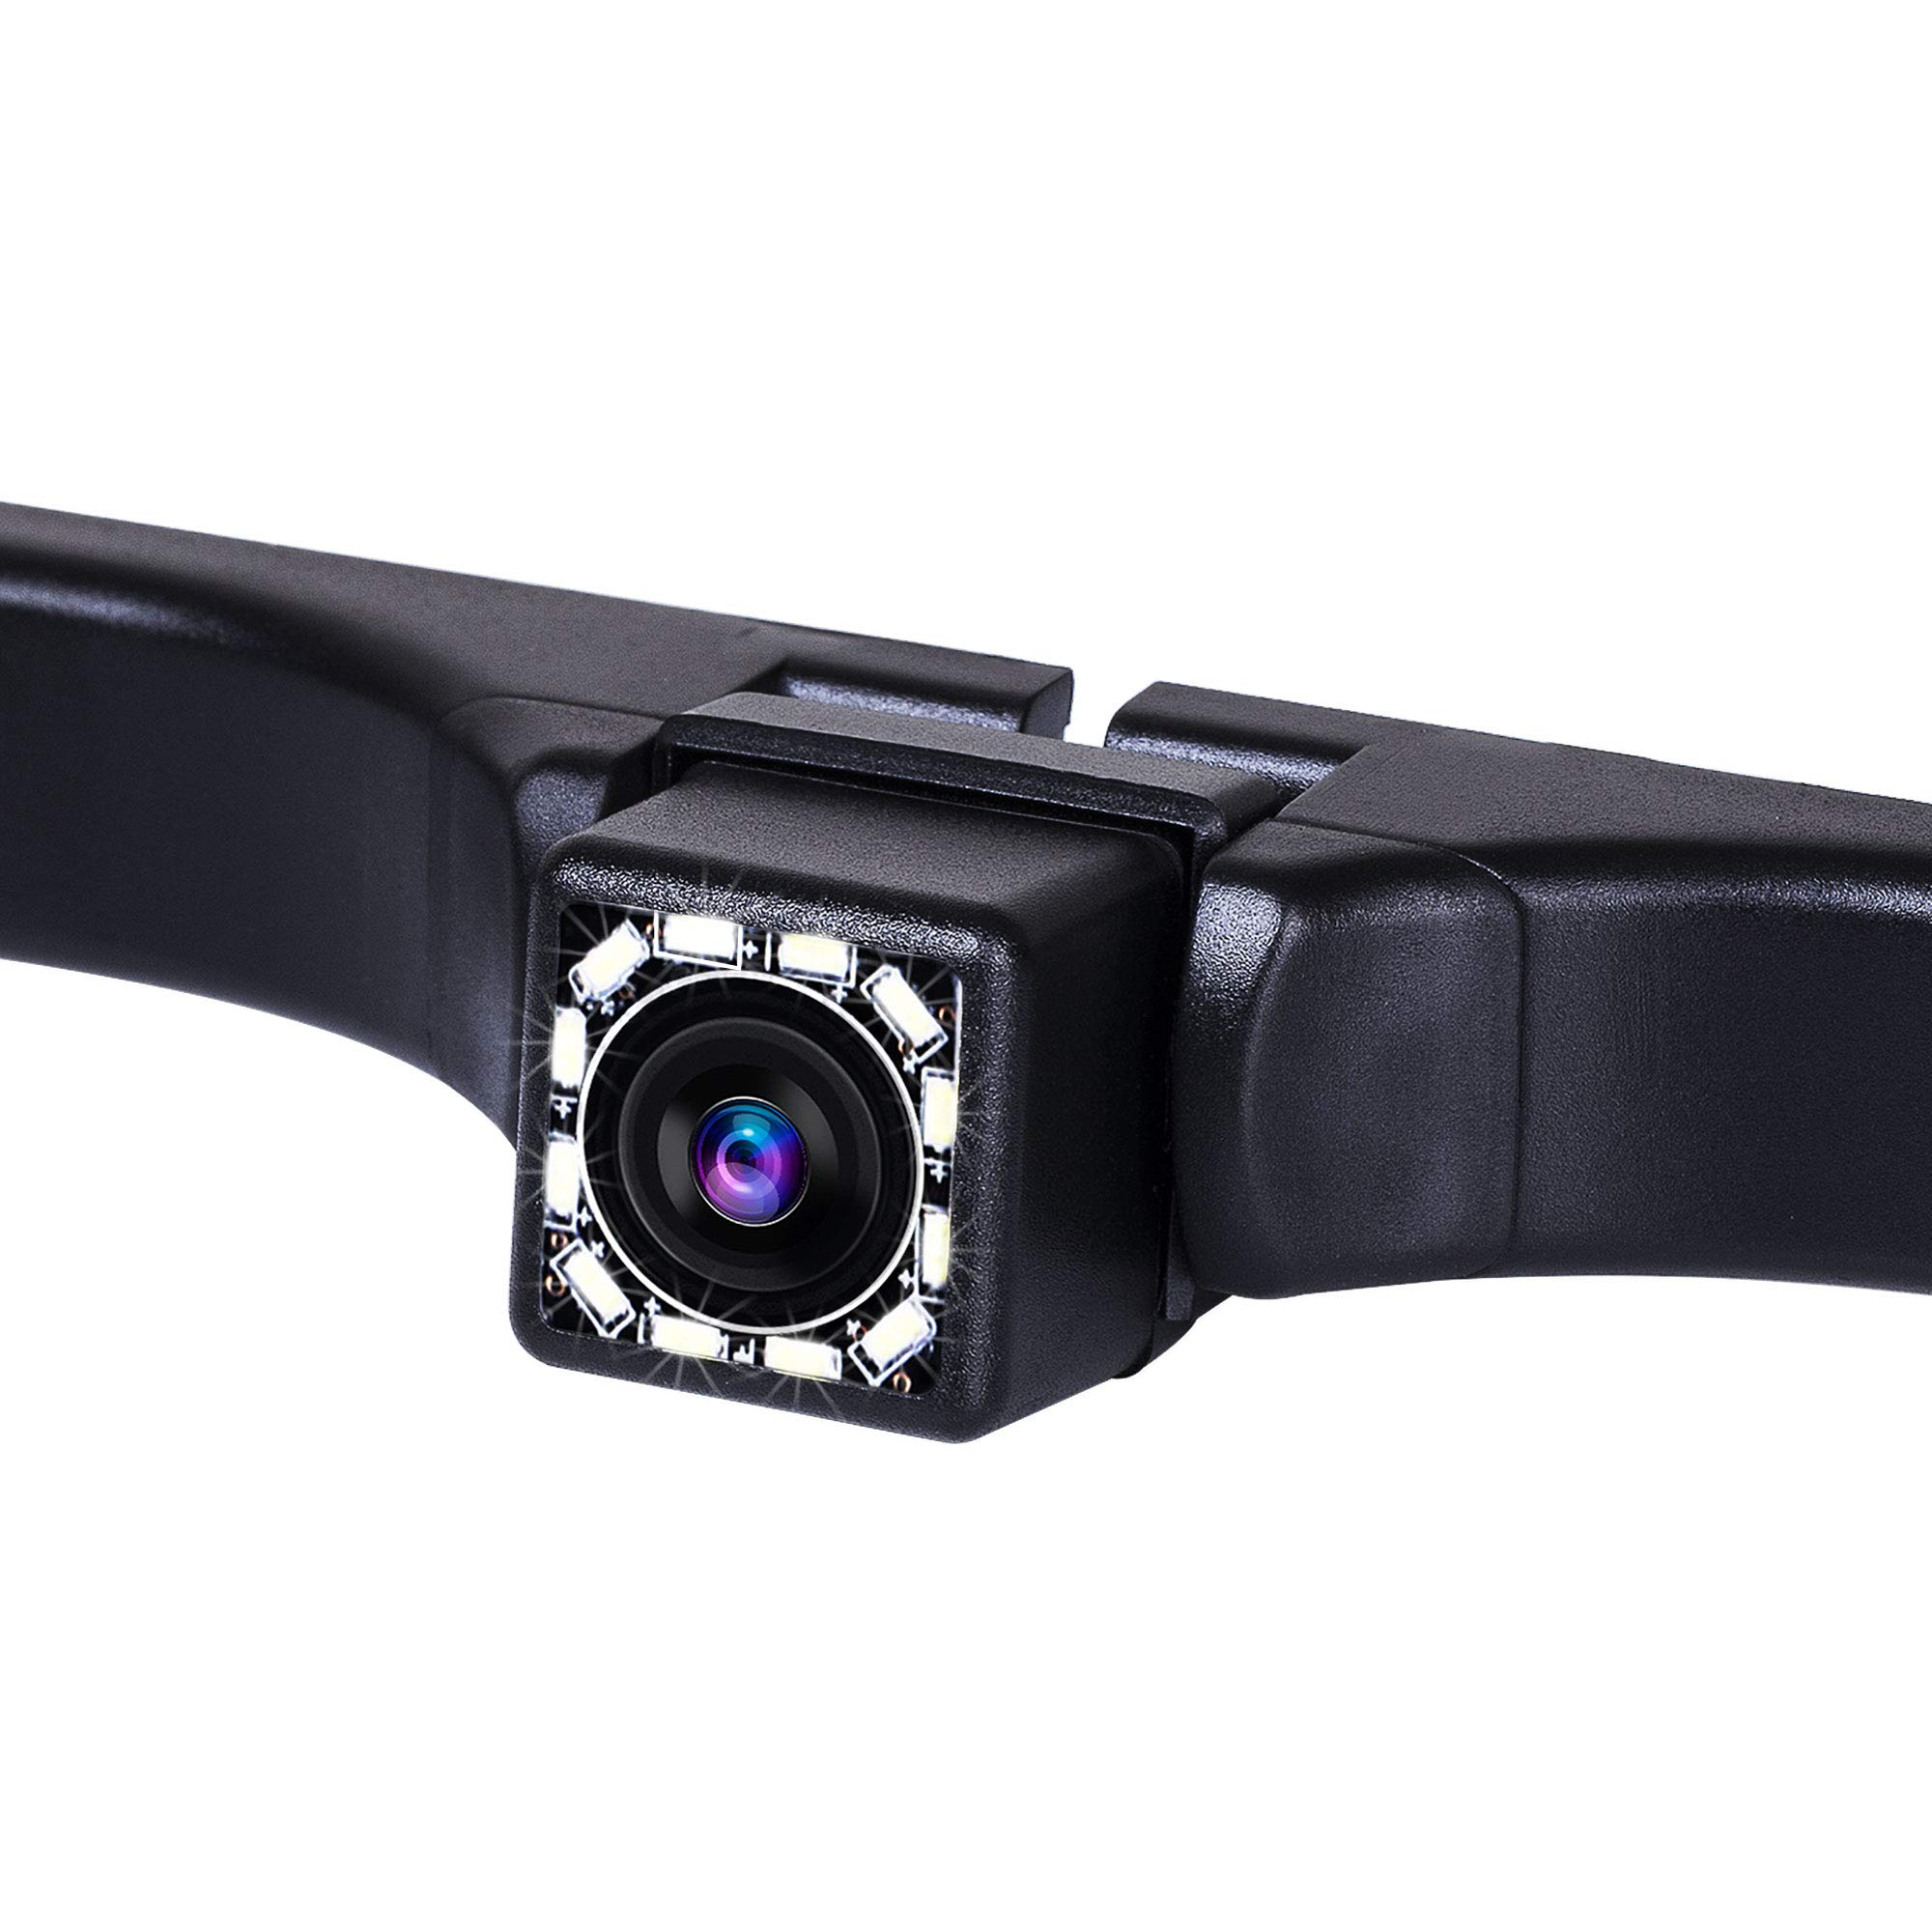 Backup Camera, Rear View Reverse Camera with Multiple Mount Brackets,Waterproof Reverse Back Up Car Camera -With 26Ft RCA Video Cable, Remove Tool and All Necesssary Parts Included